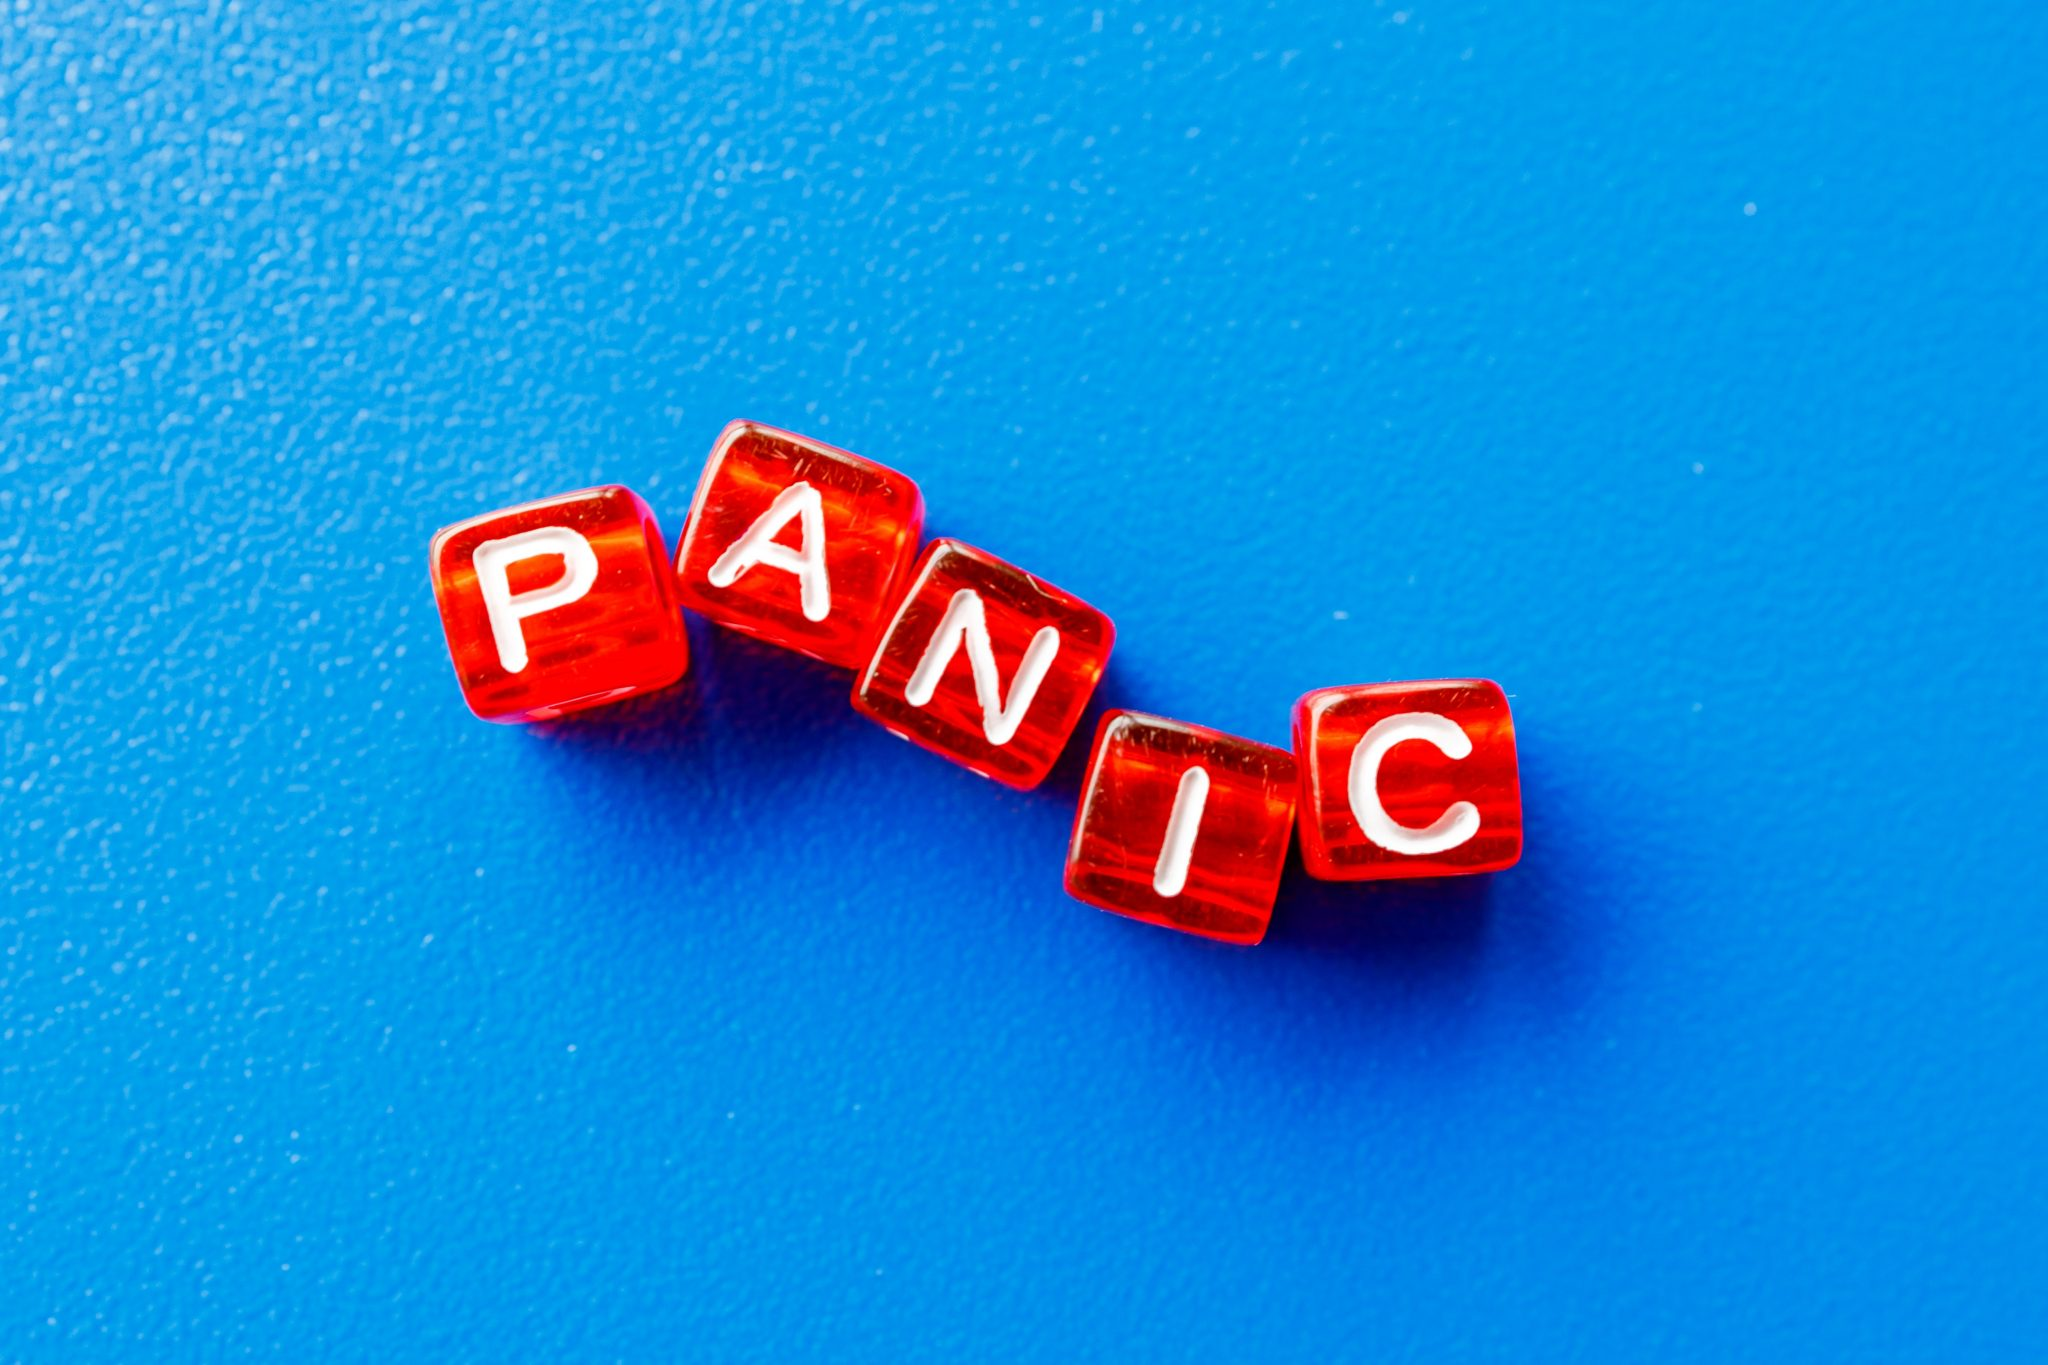 The word panic associated with feR